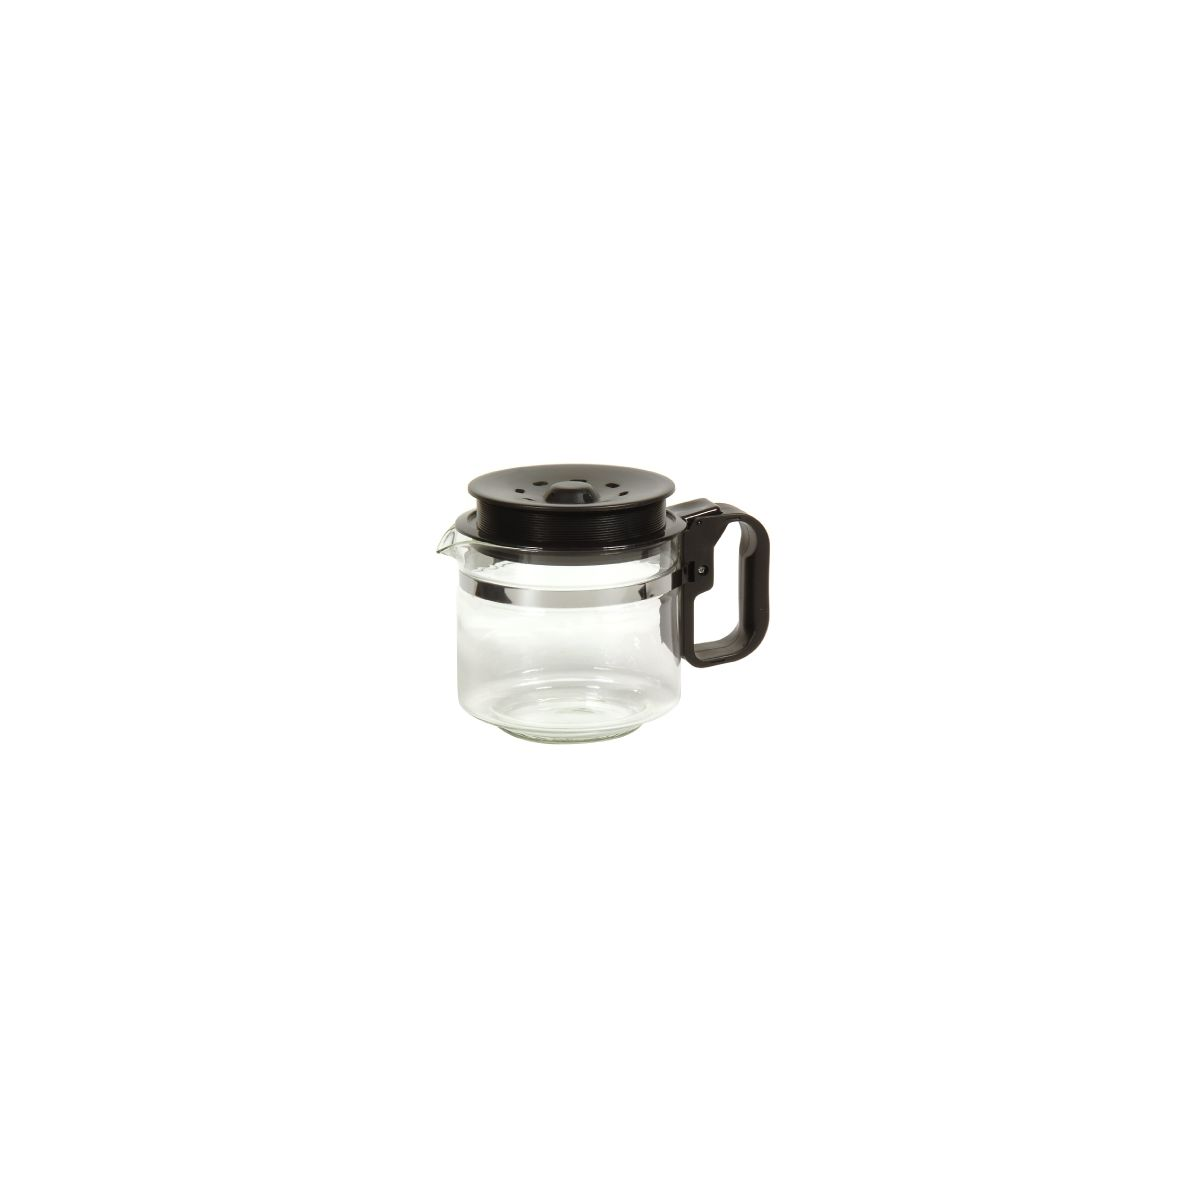 Verseuse & filtre cafeti�re essentielb universelle 12-15 tasses (photo)